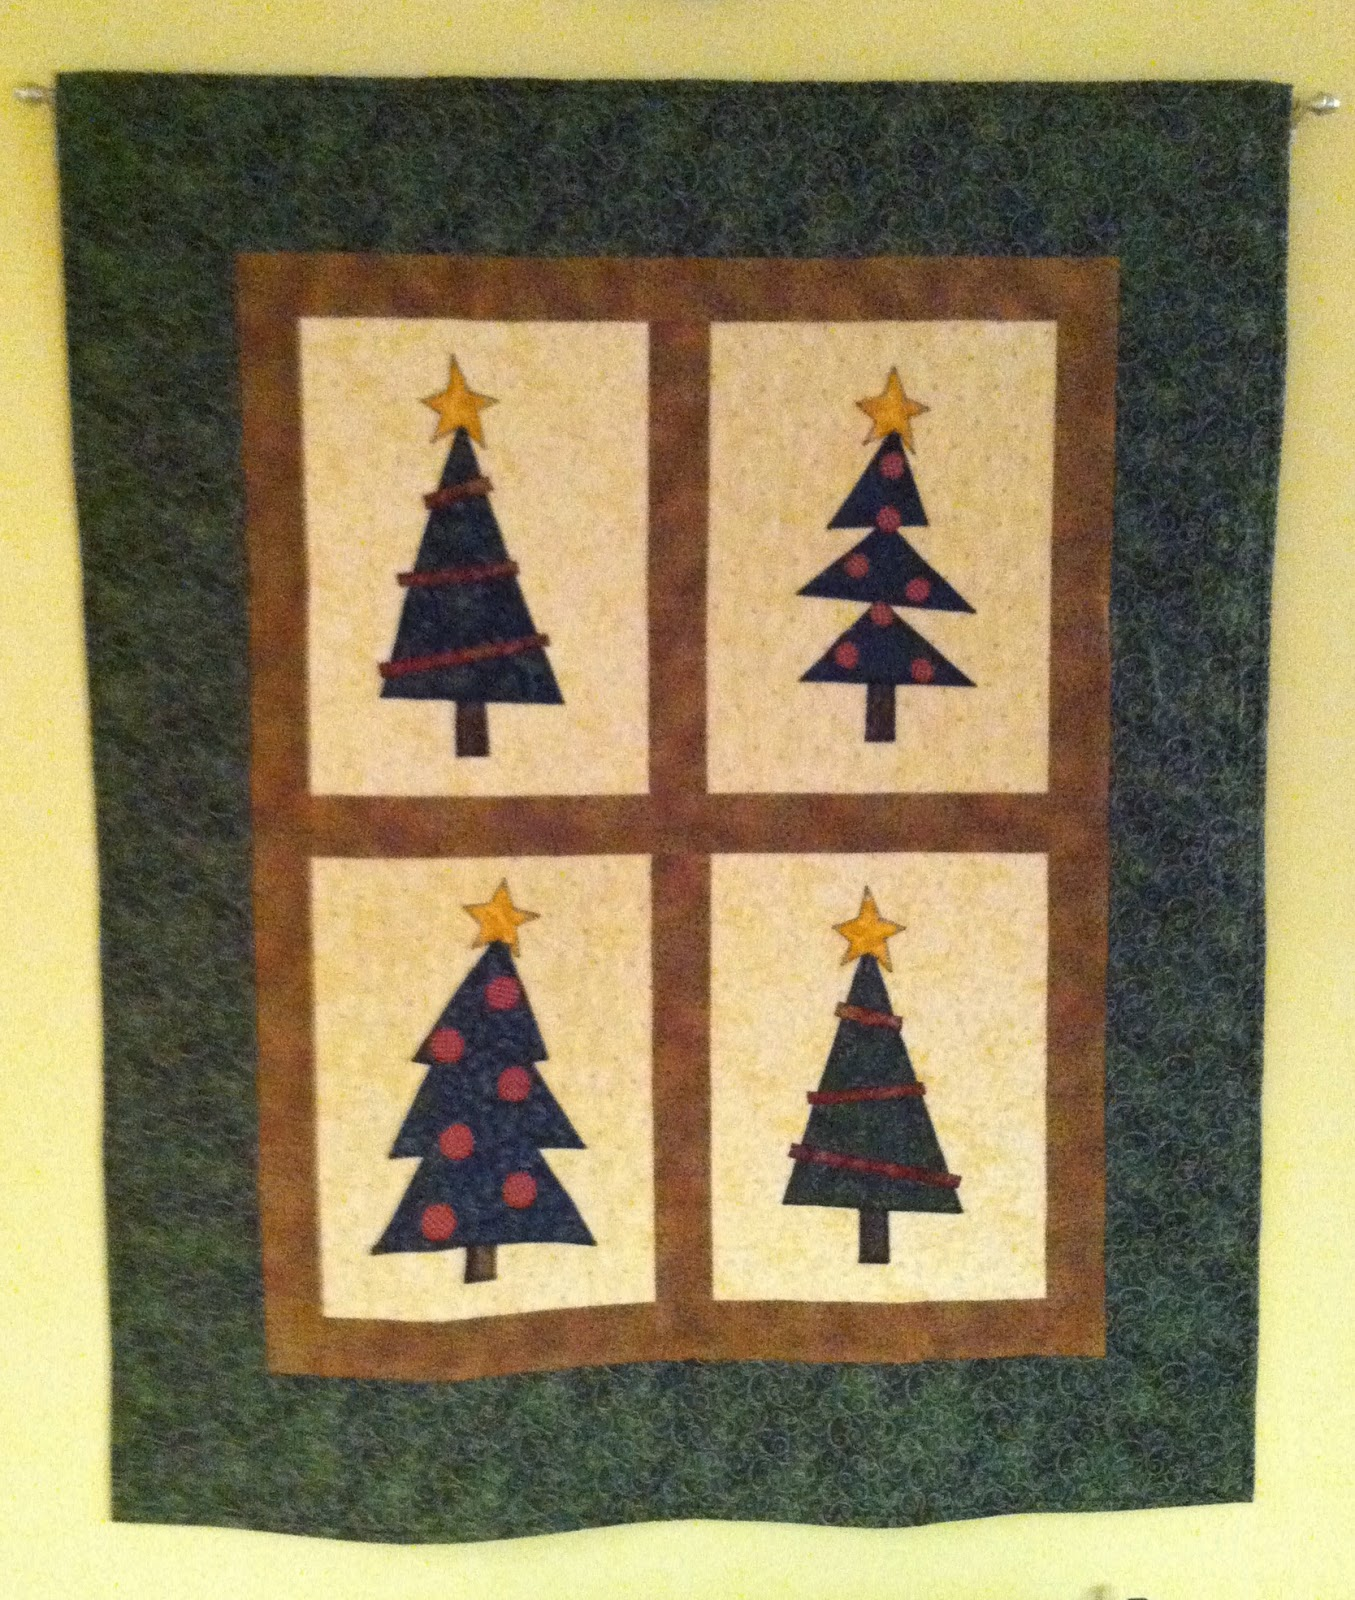 Whimsical Christmas Tree Wall Hanging - Fun and simple way to decorate for Christmas